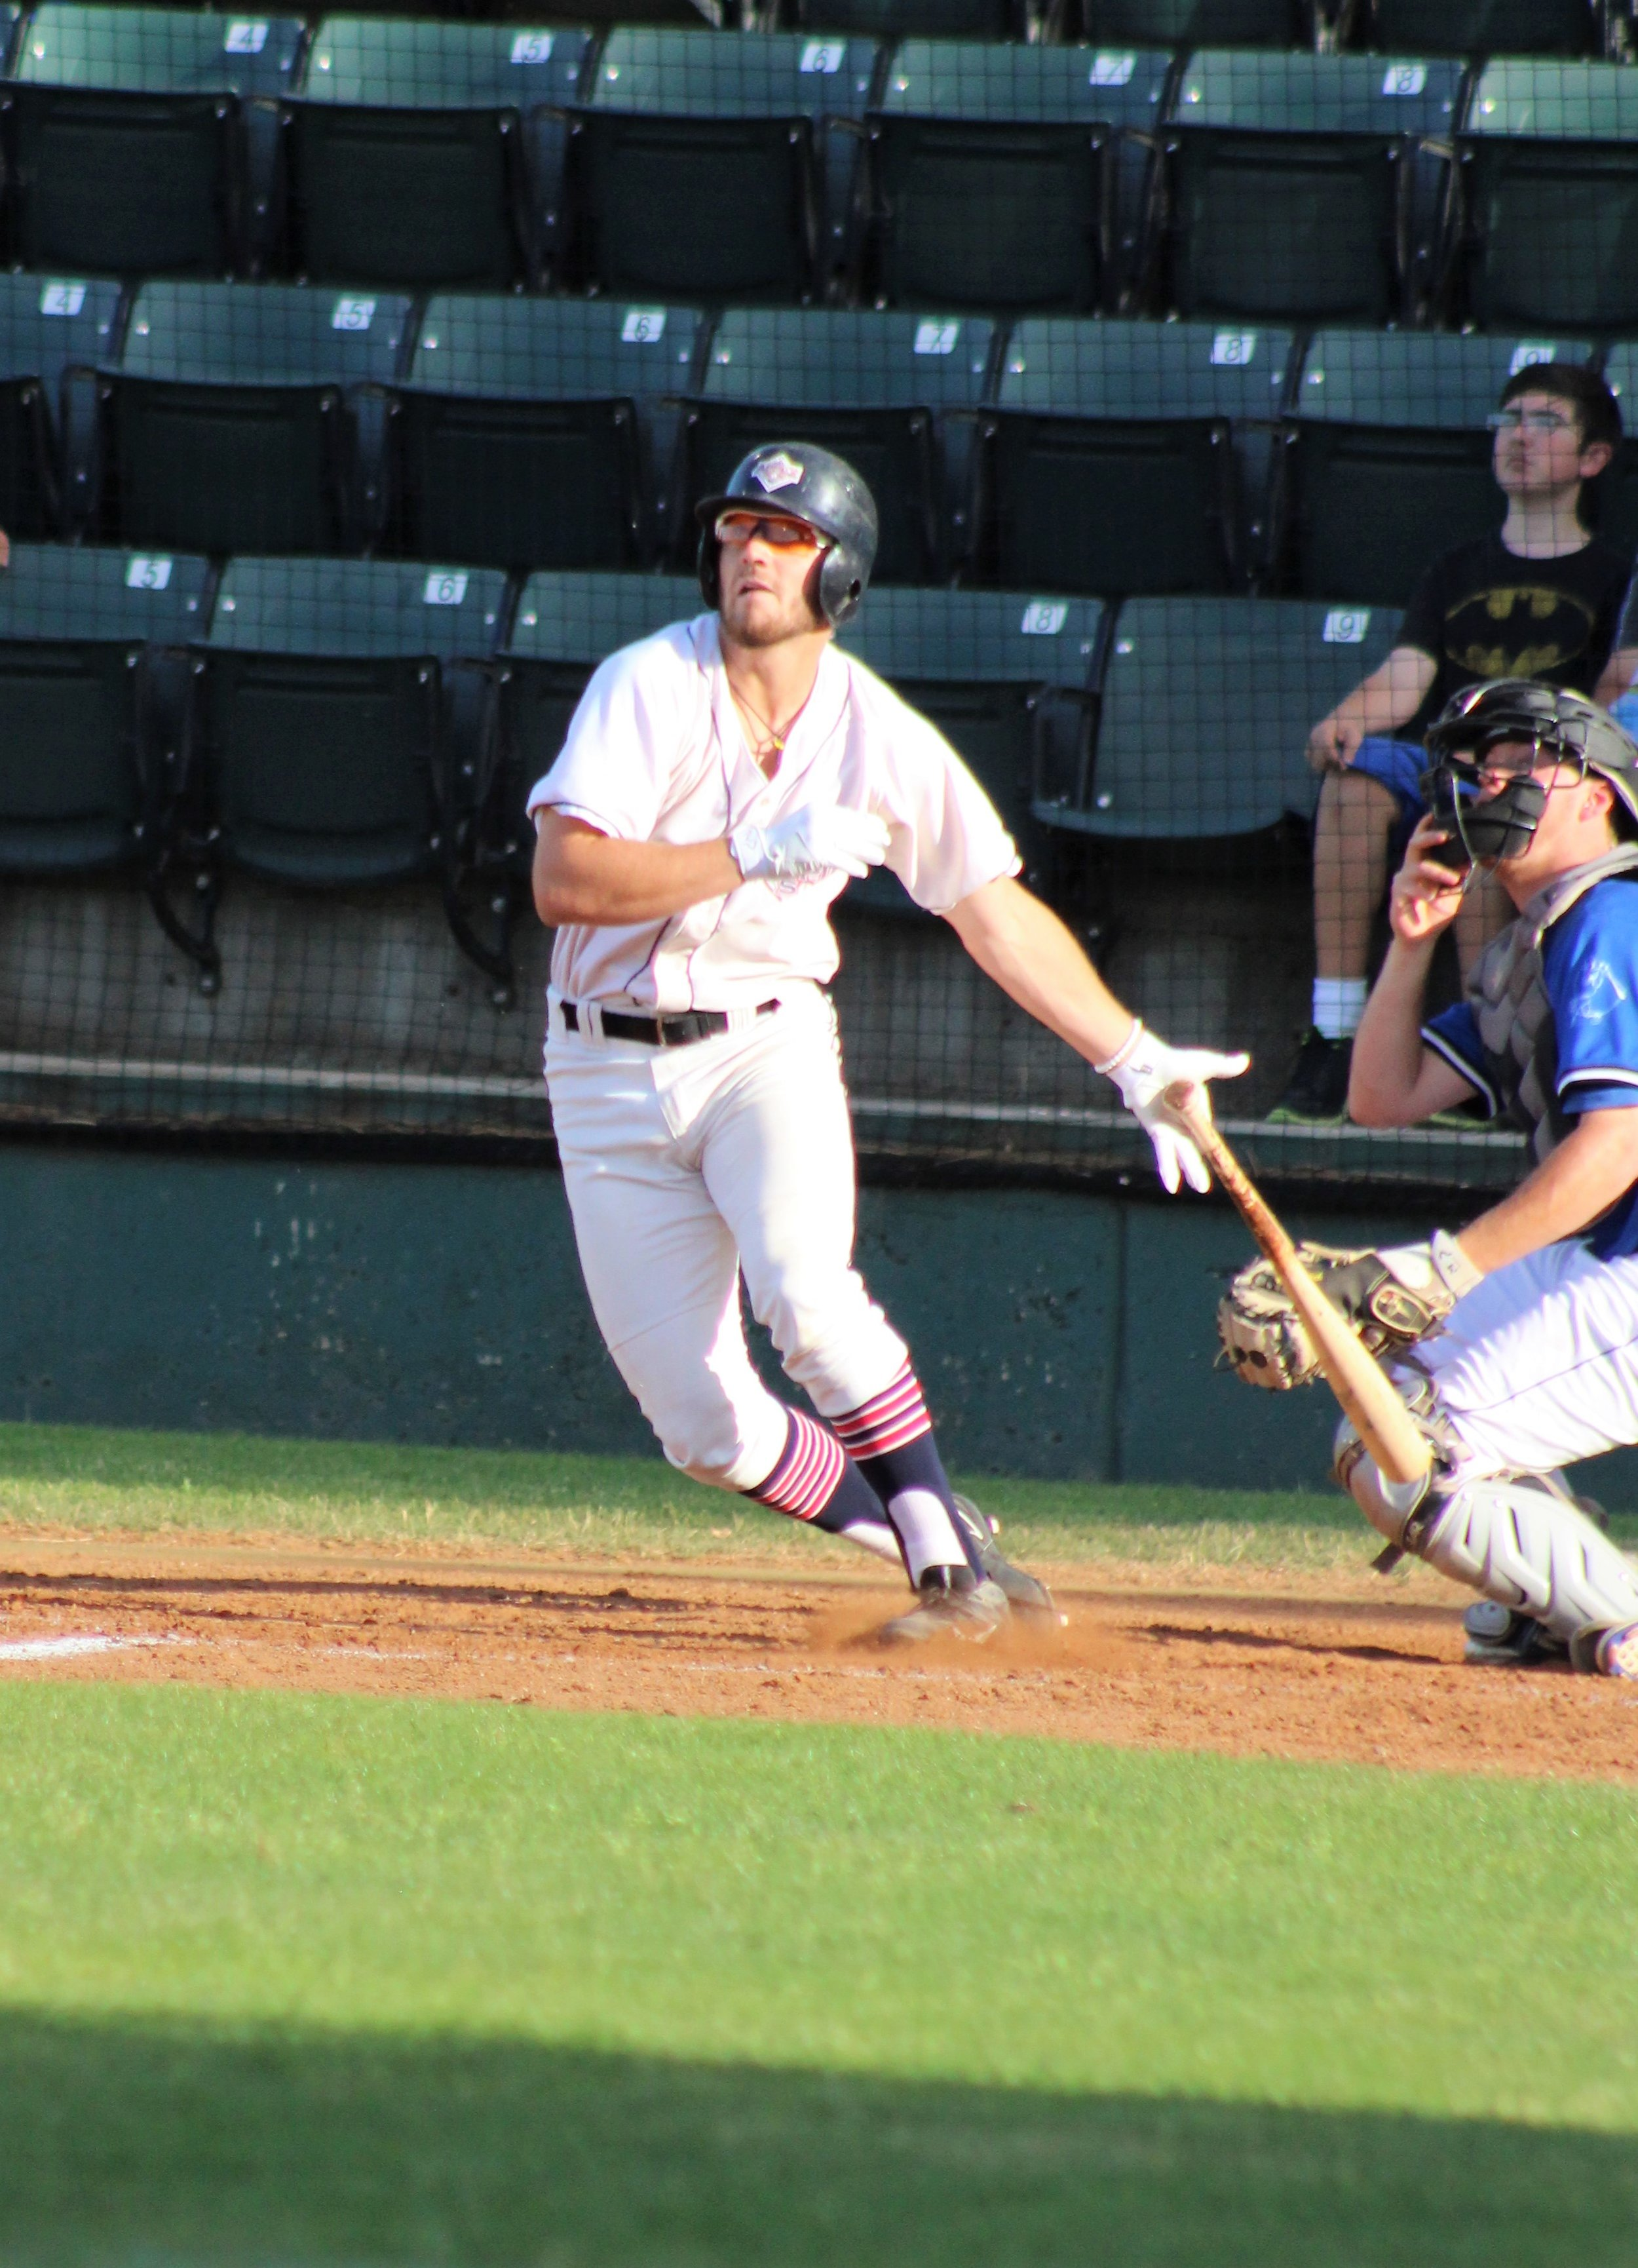 Josh Zamora homered to lead off the third inning for Wenatchee. He finished with three hits. Photo by Alyssa Taylor